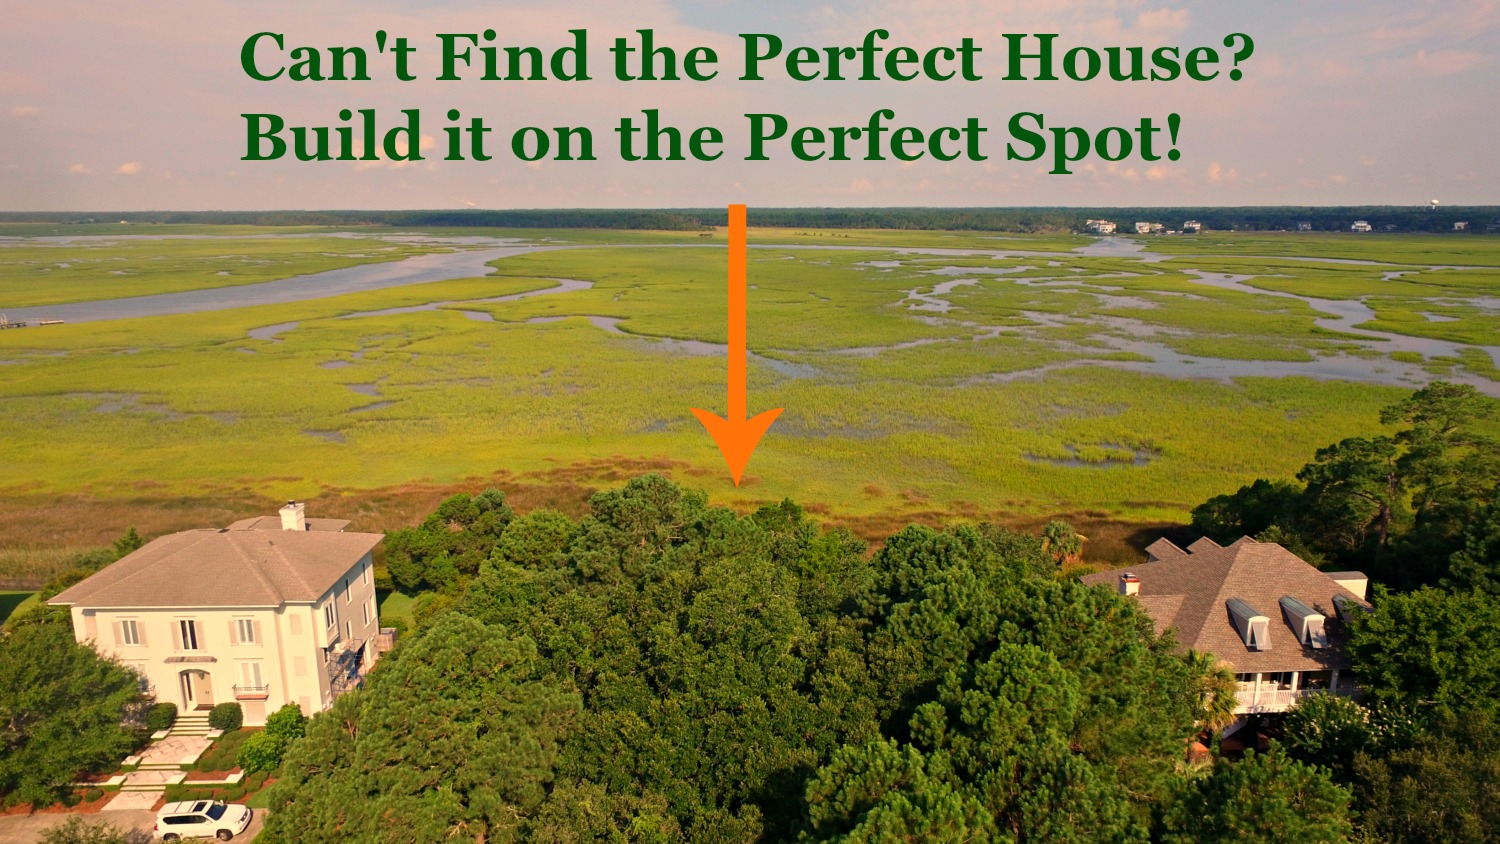 Can't Find the Perfect House…? BUILD IT!